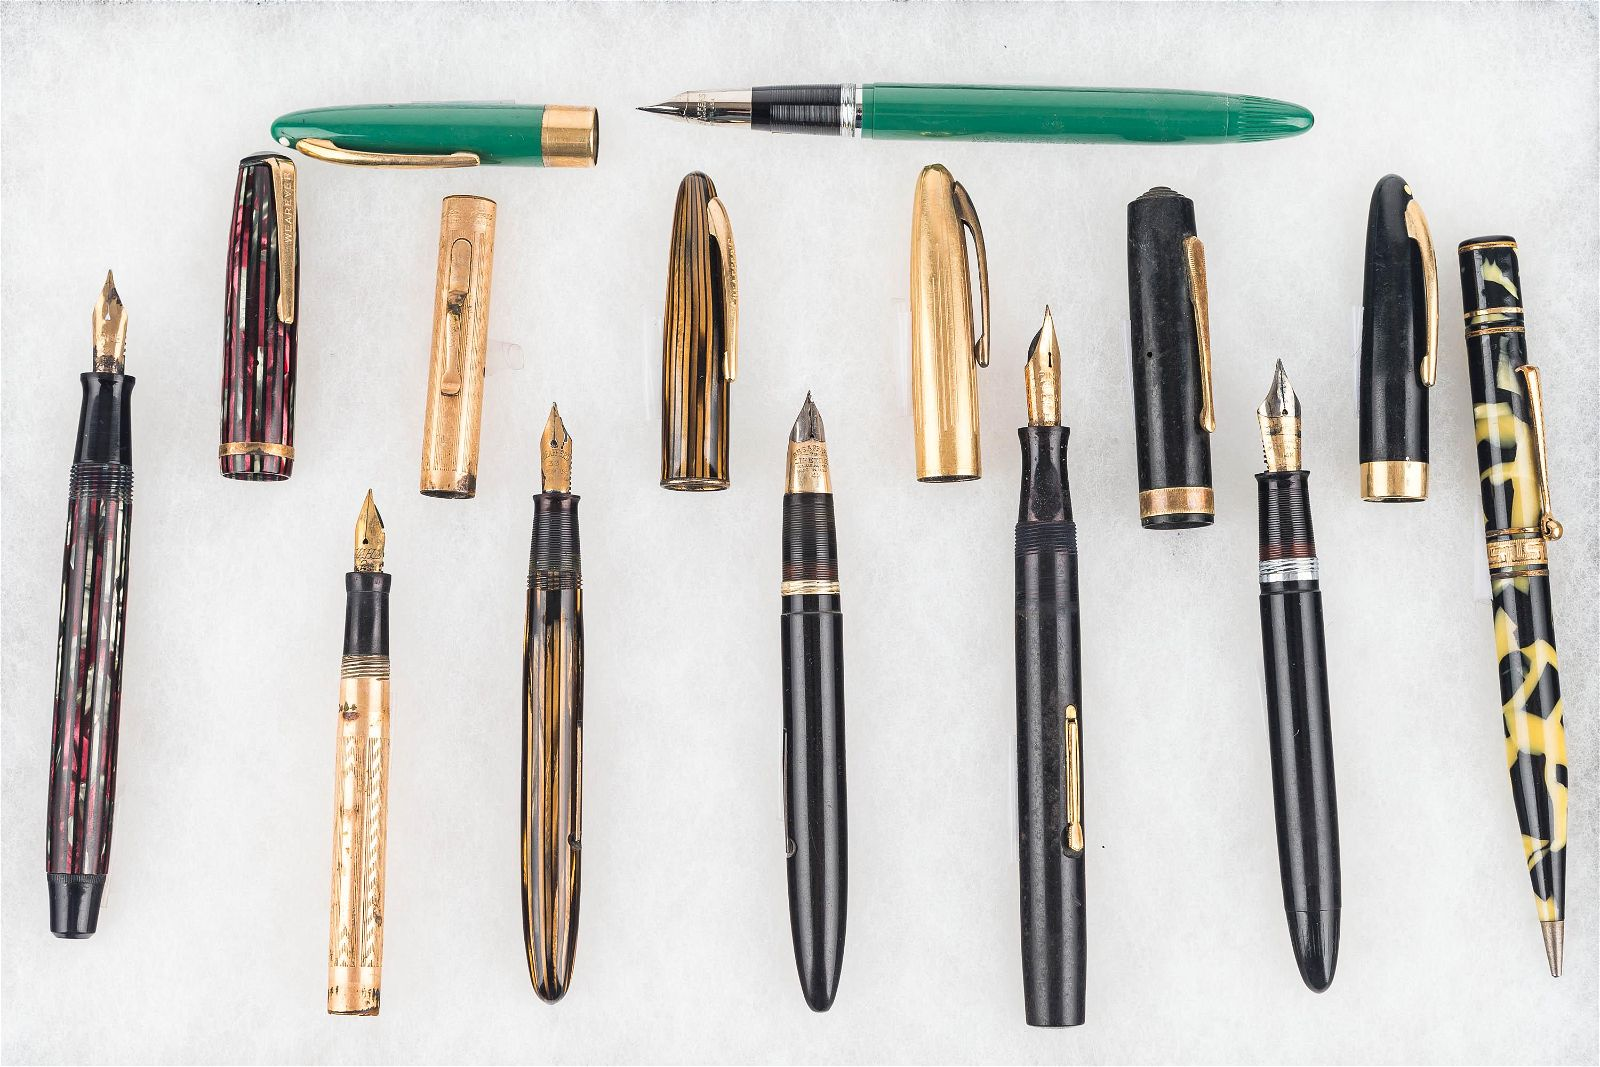 Vintage Fountain Pens With 14k Gold Nibs.